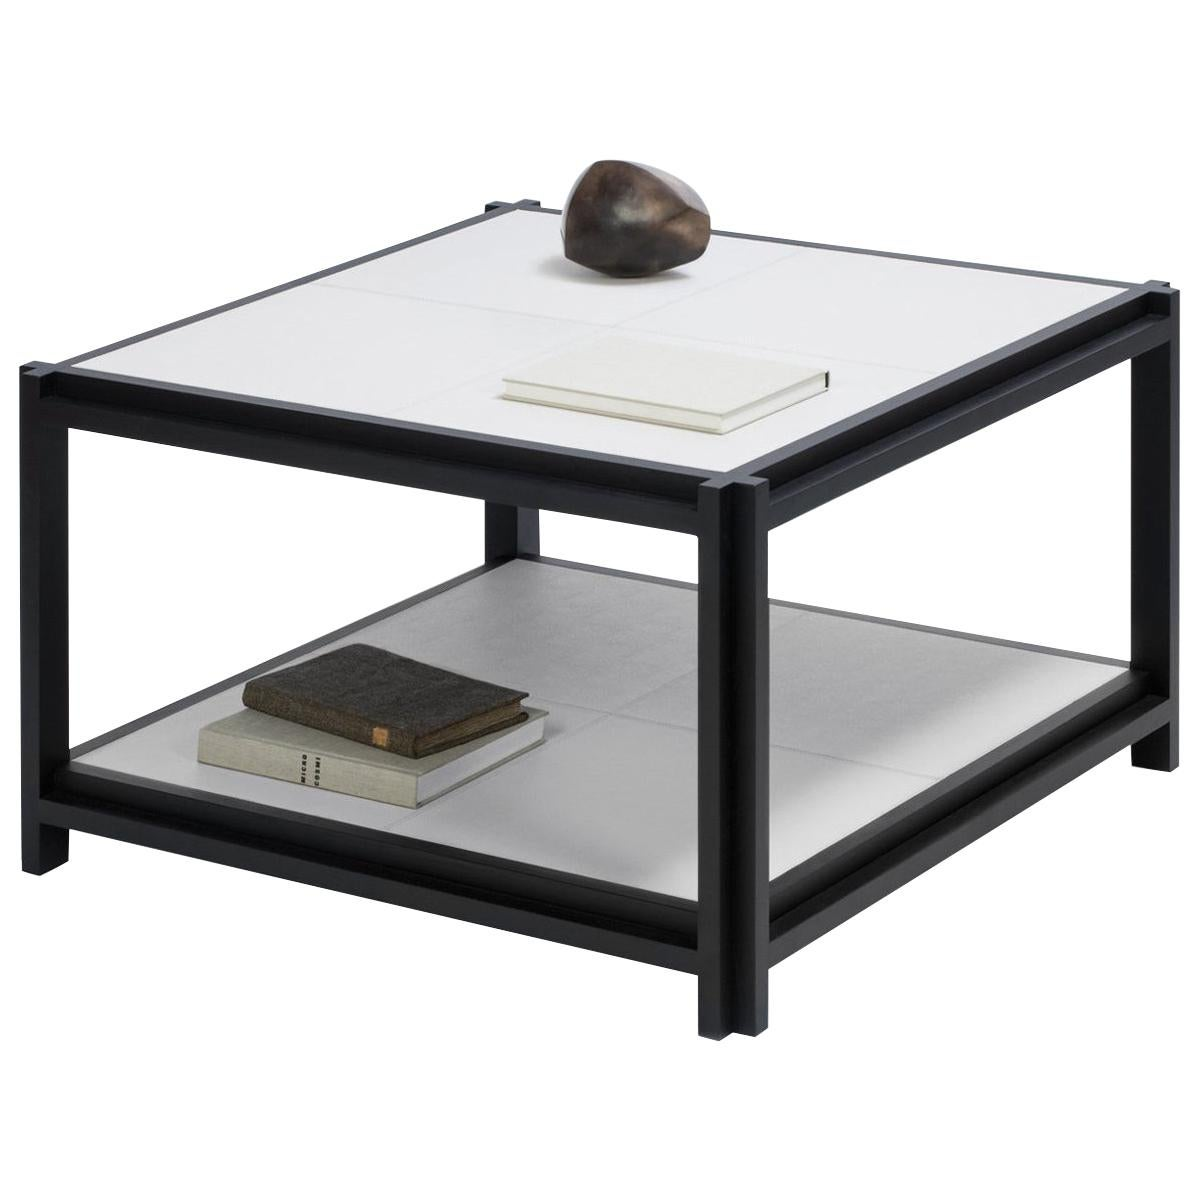 Structura 2-Level Square Coffee Table